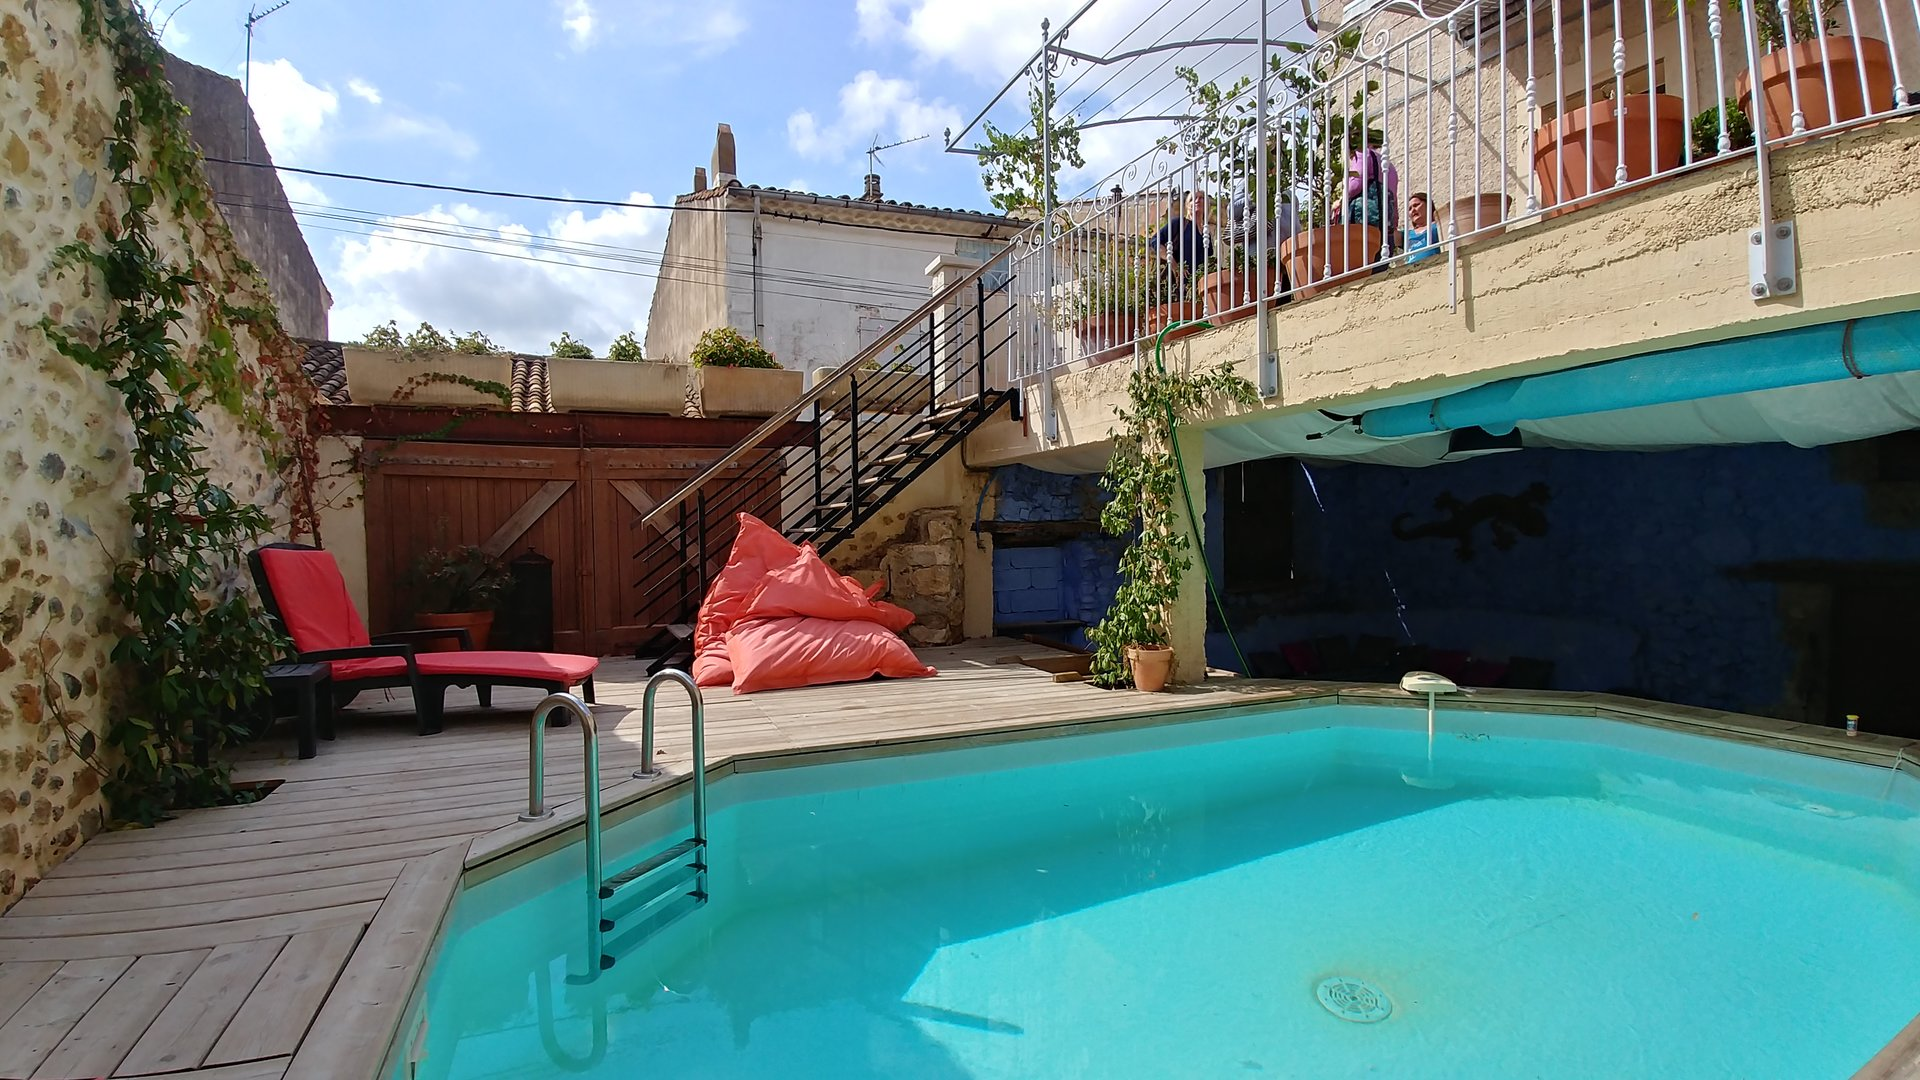 Winemakers house with terrace and courtyard pool. 3 bed, 2 bath, garage